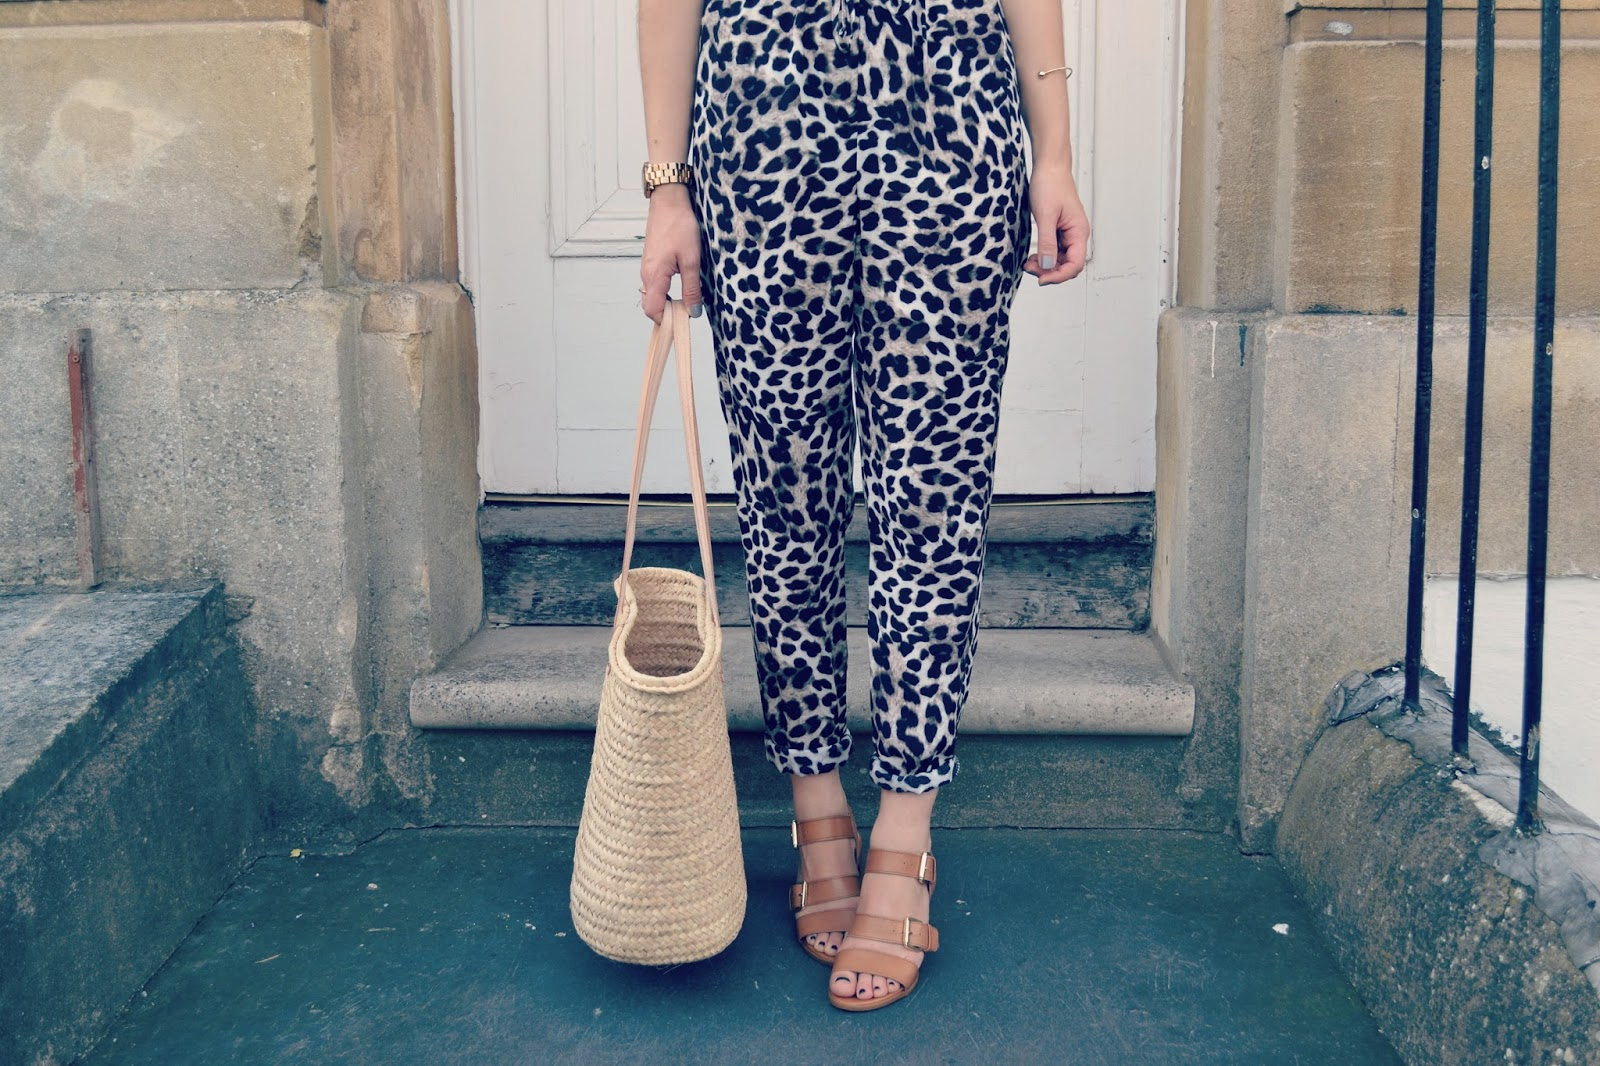 carvela sandals asda leopard print jumpsuit